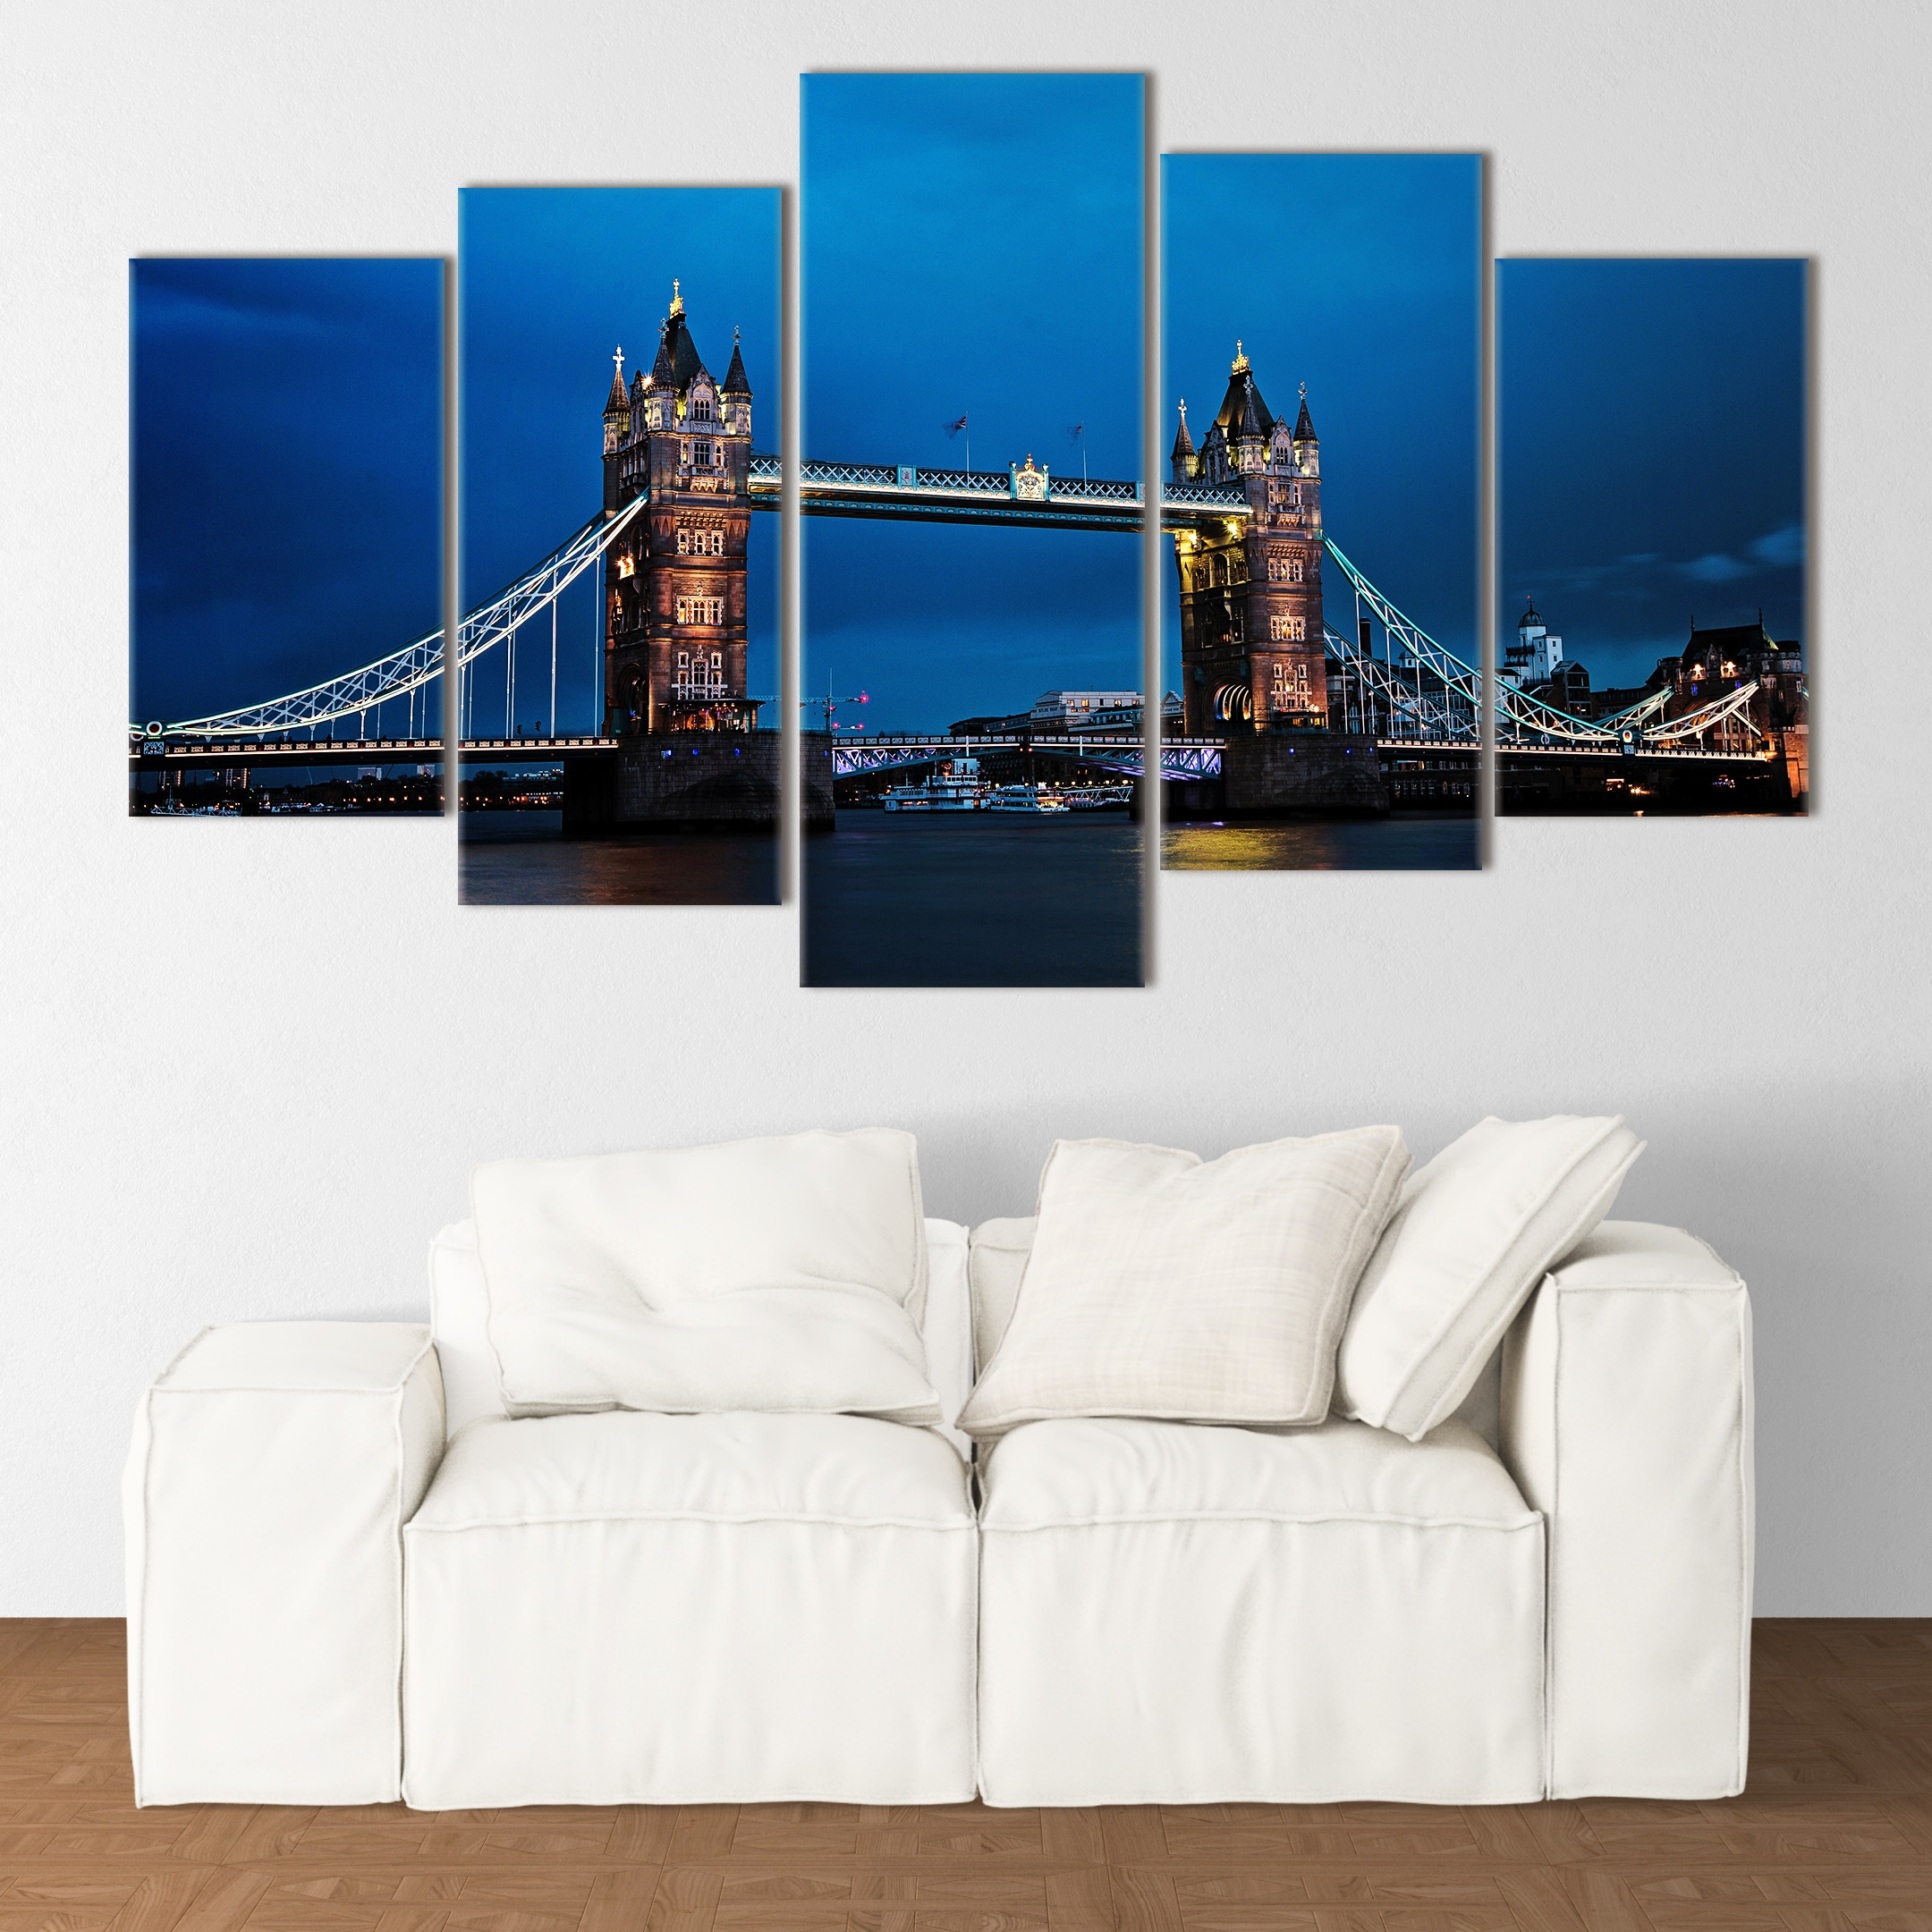 Tower Bridge at Dusk - Beautiful Home Décor | Unique Canvas